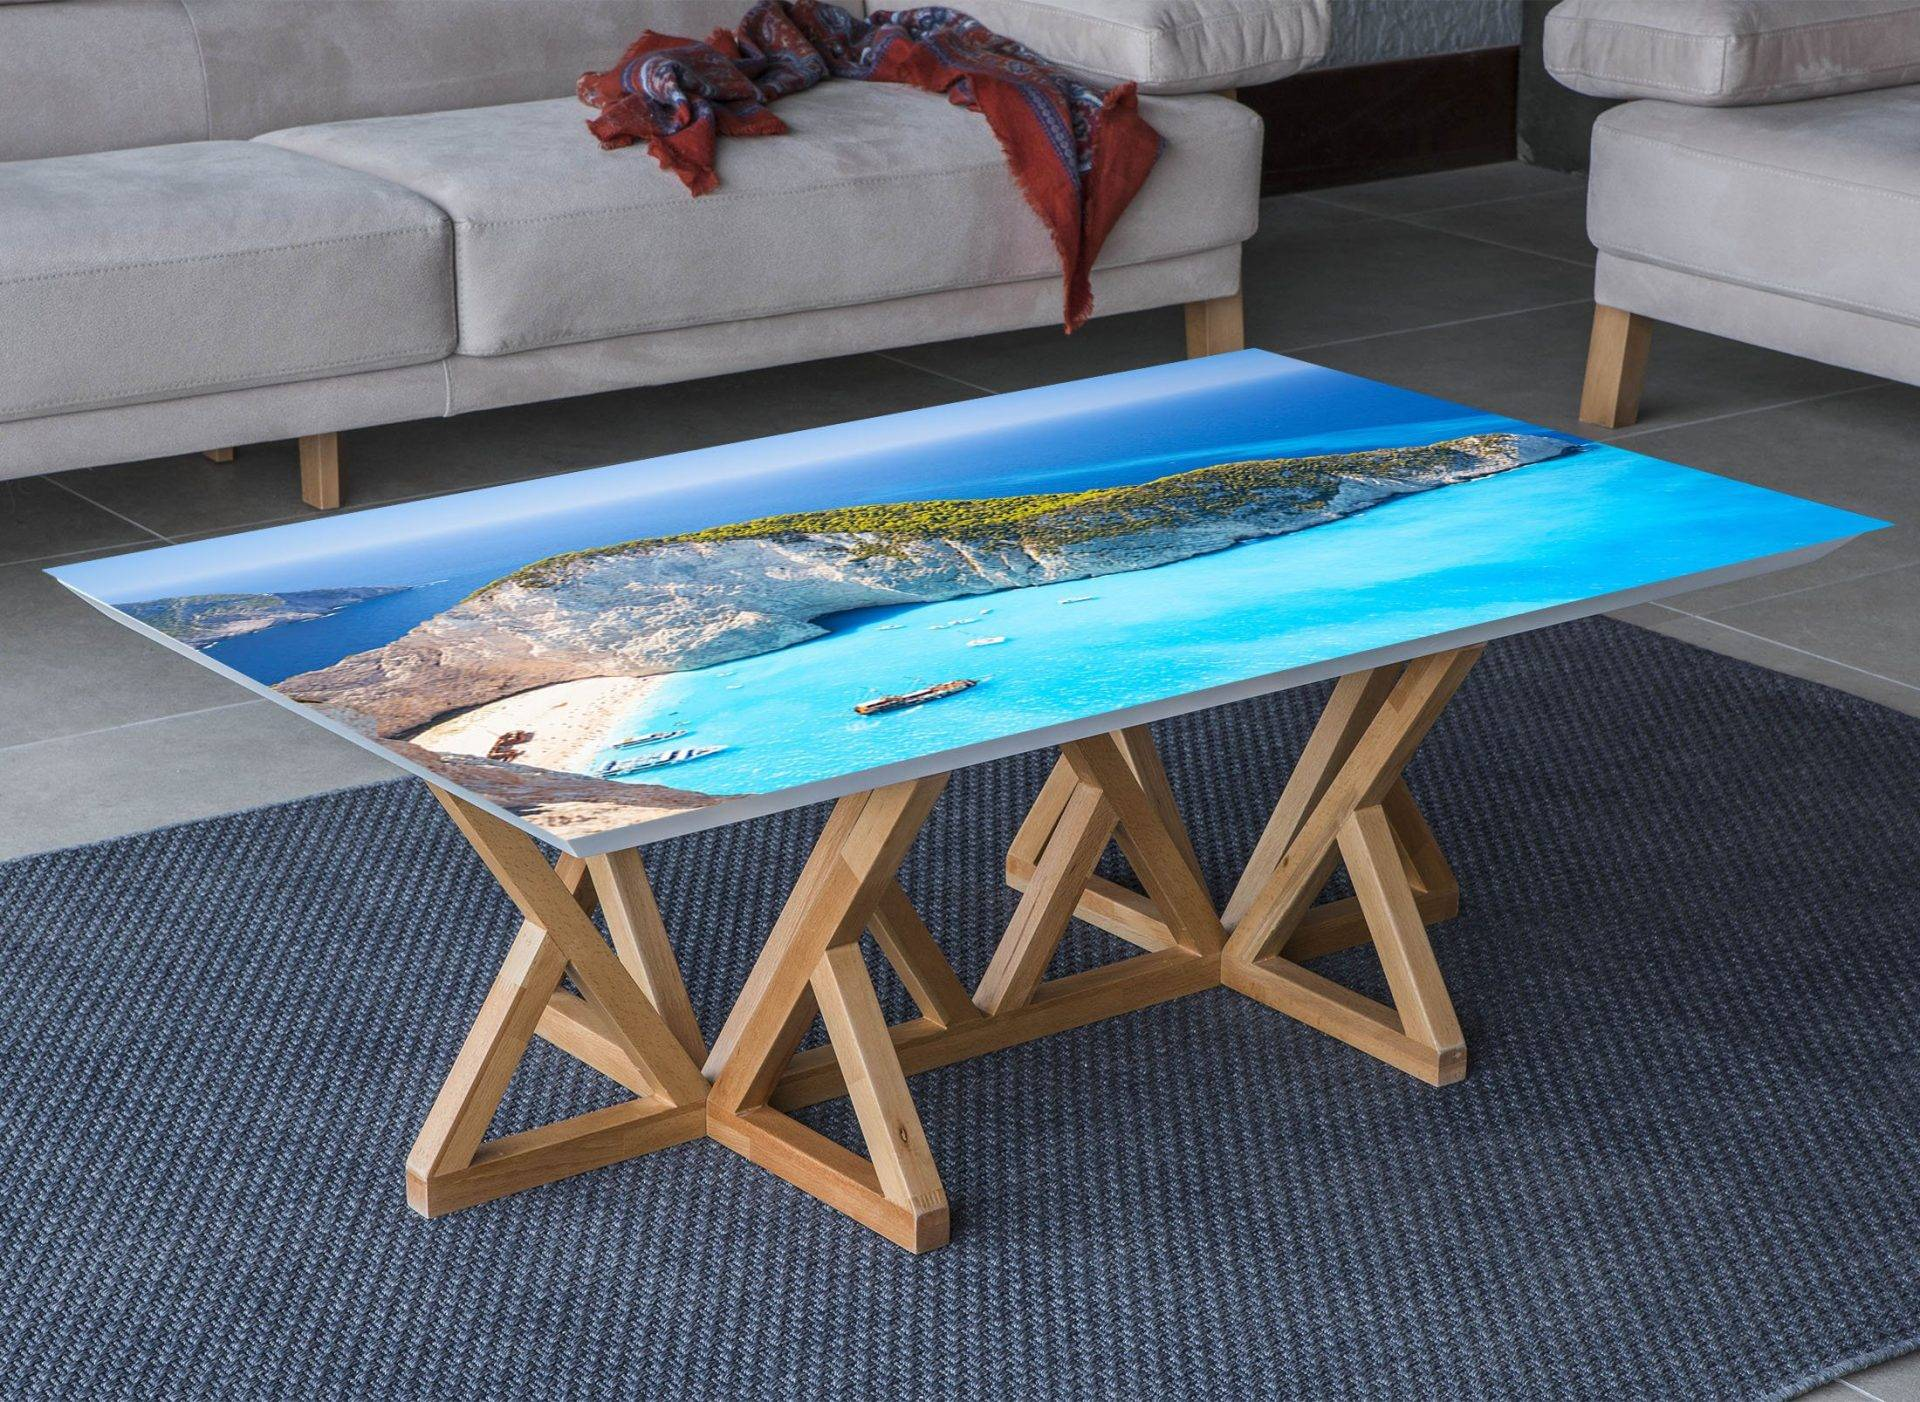 Ocean Island View Laminated Vinyl Cover Self-Adhesive for Desk and Tables